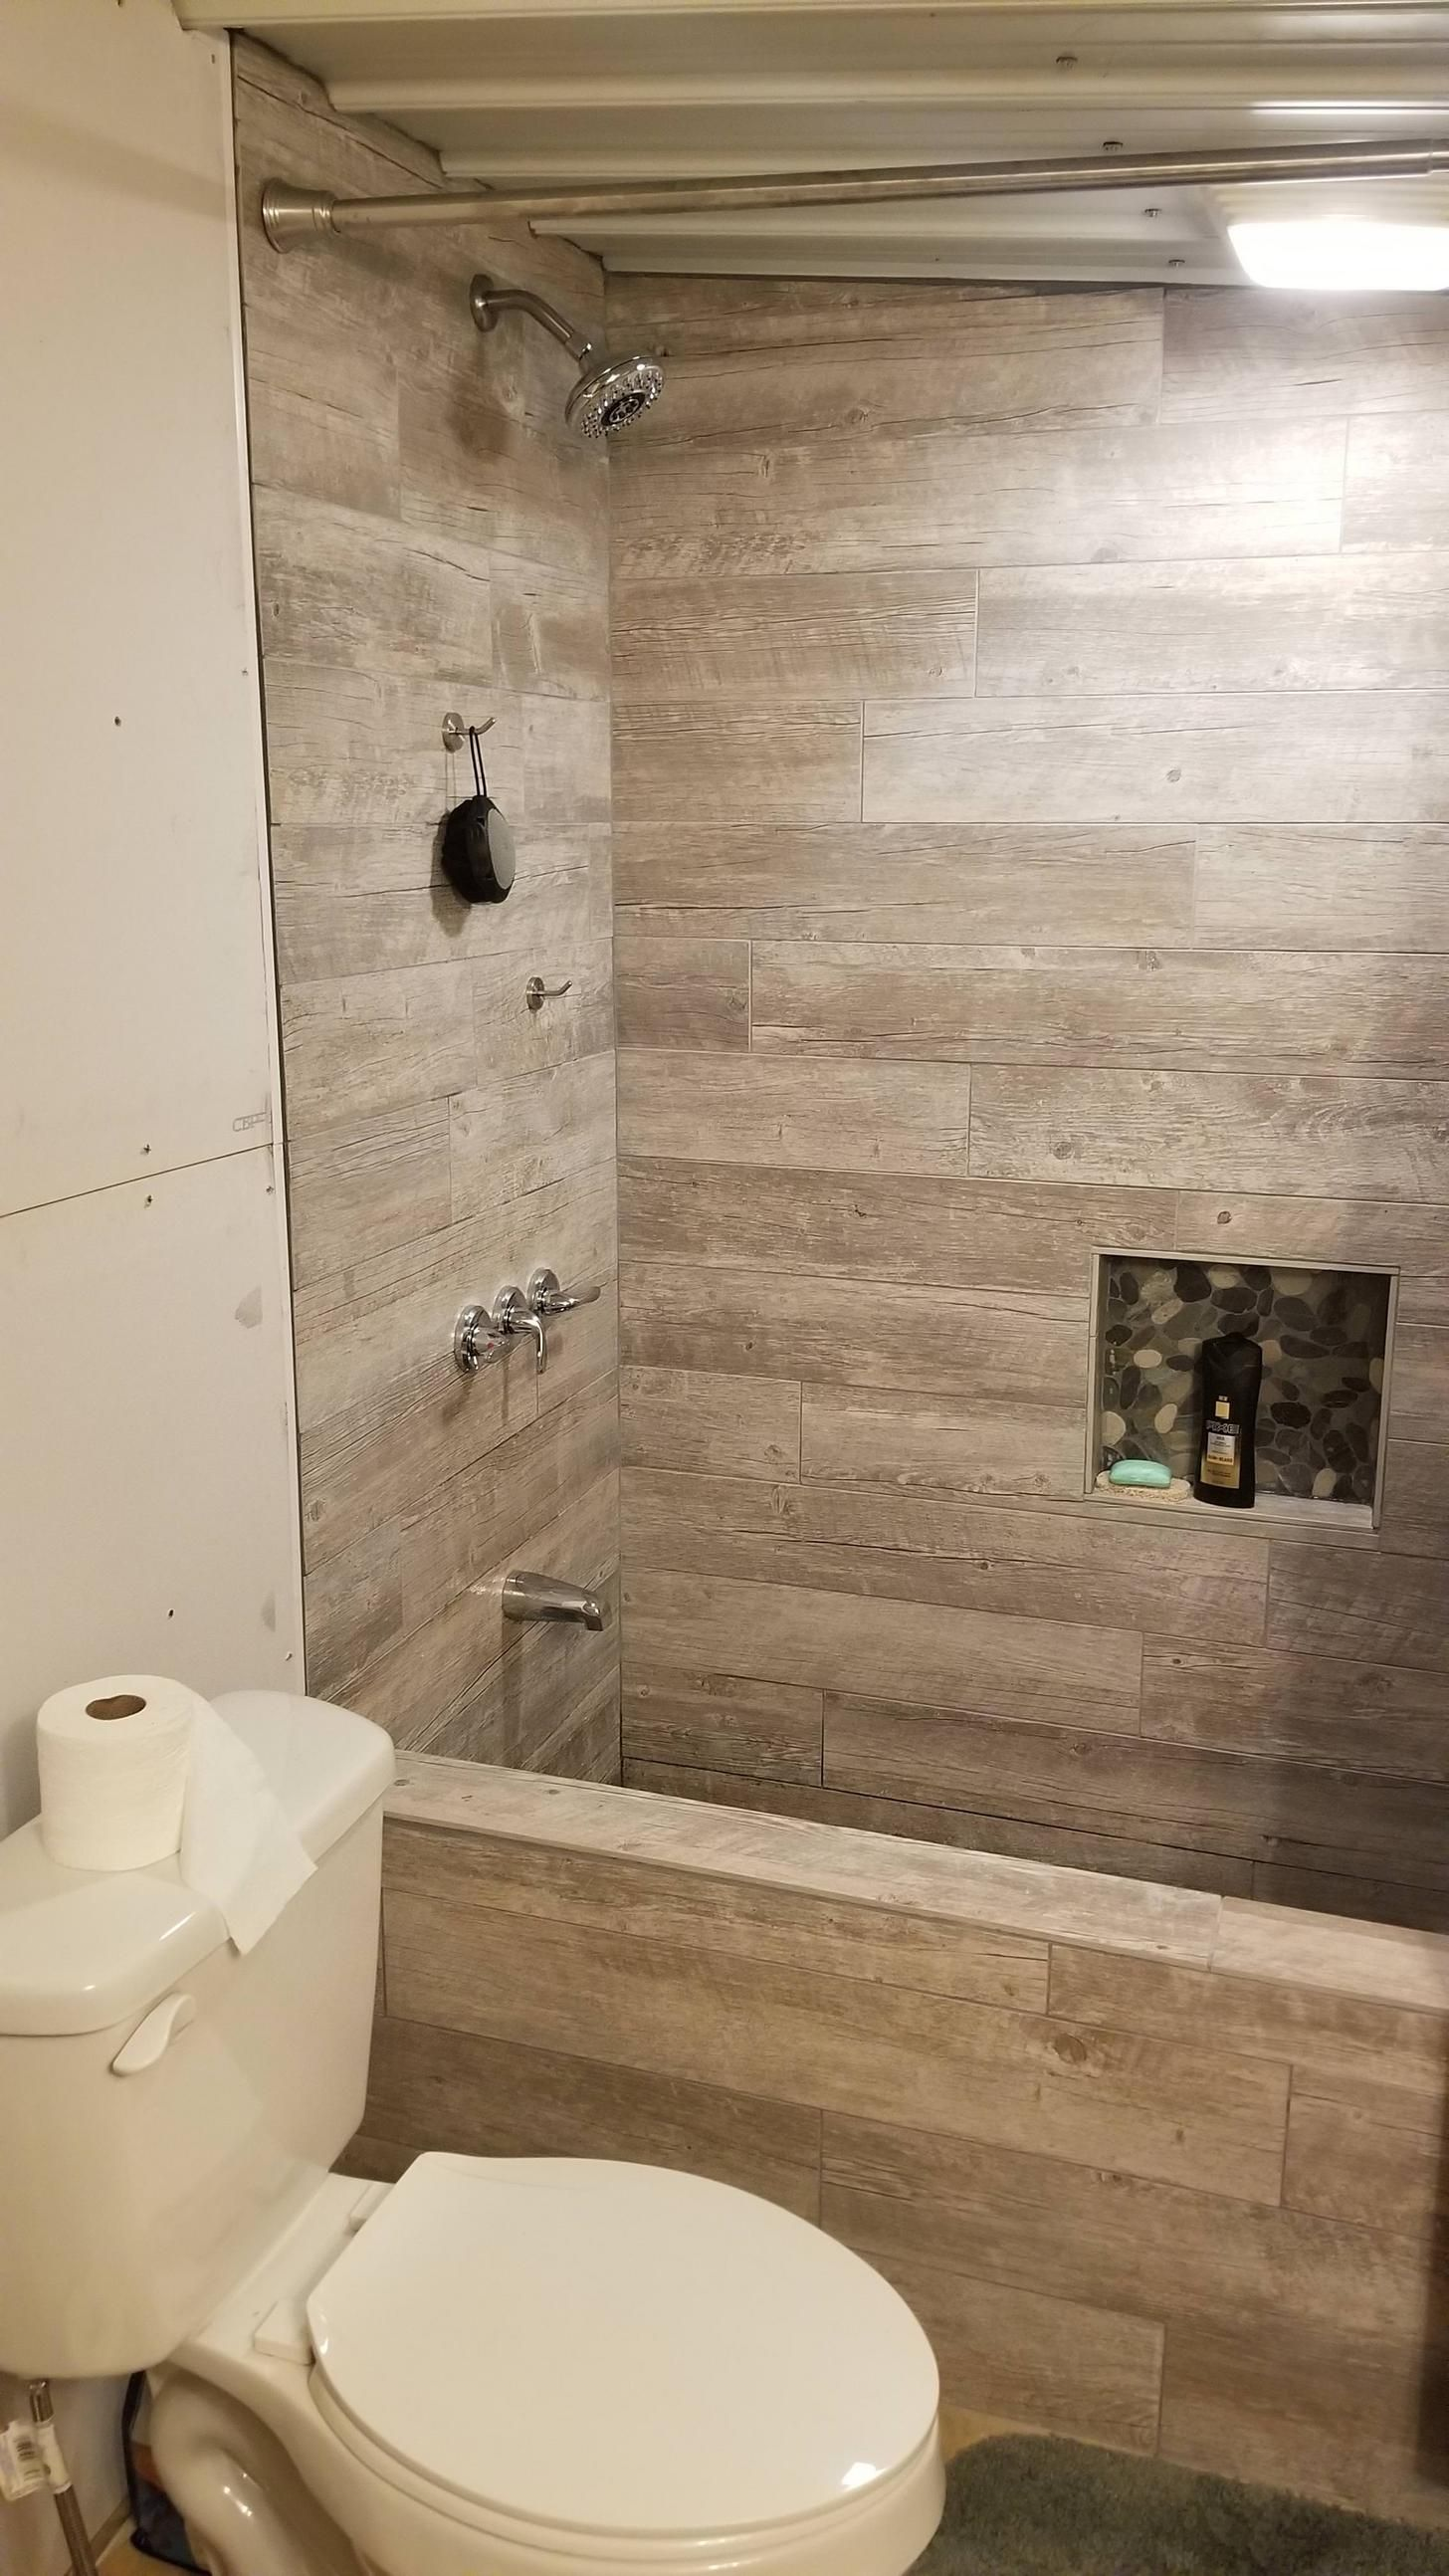 Just Finished The Custom Shower Bathtub In My Apartment All Made Out Of Tile In 2020 Bathtub Shower Bathtub Tile Concrete Bathtub